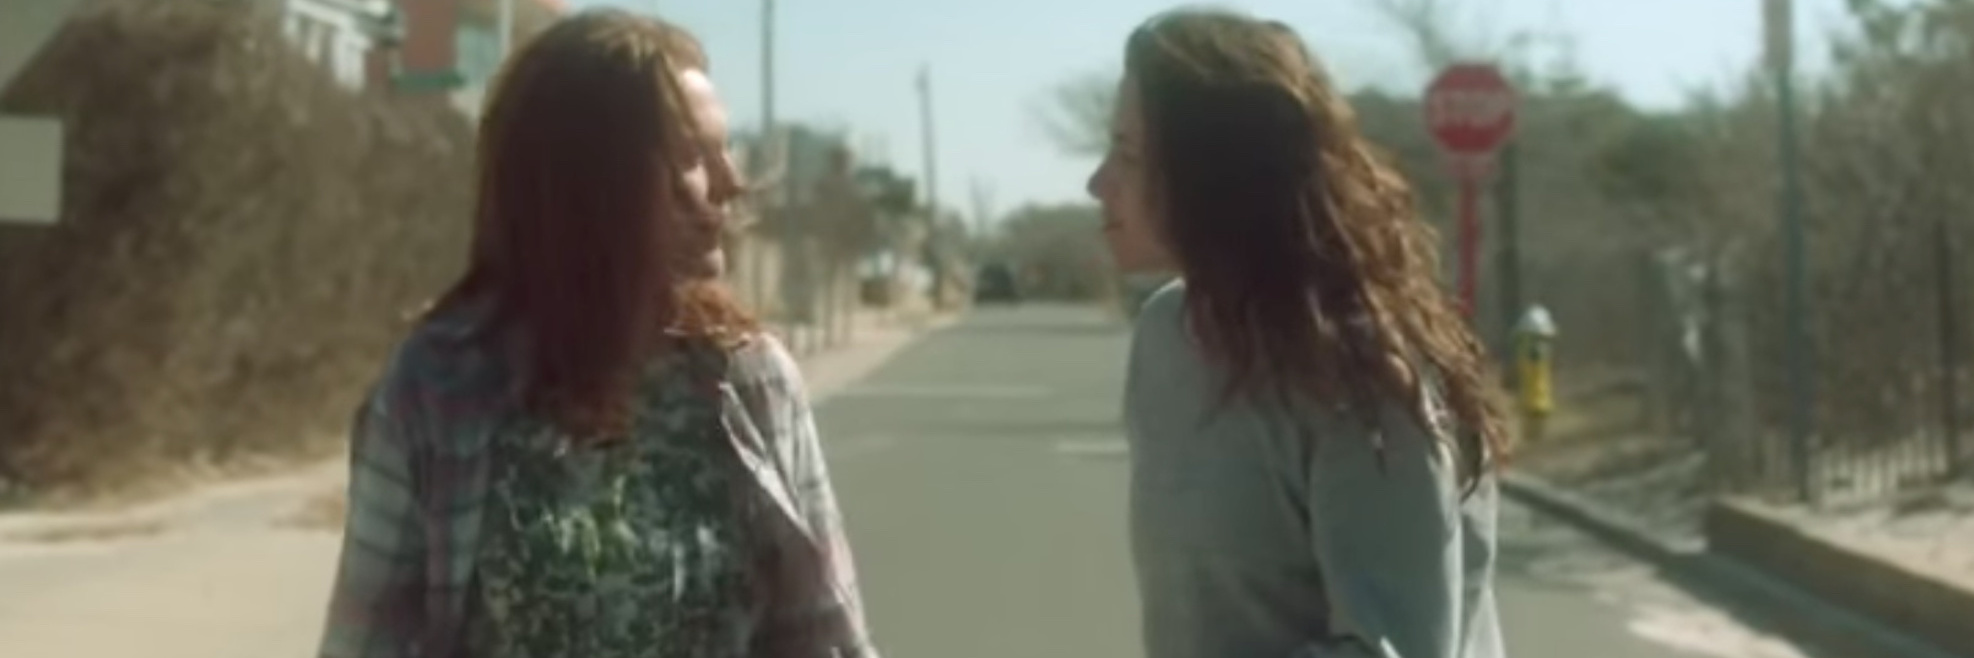 A scene from the movie Still Alice: Kristen Stewart and Julianne Moore walking down a street, having a conversation